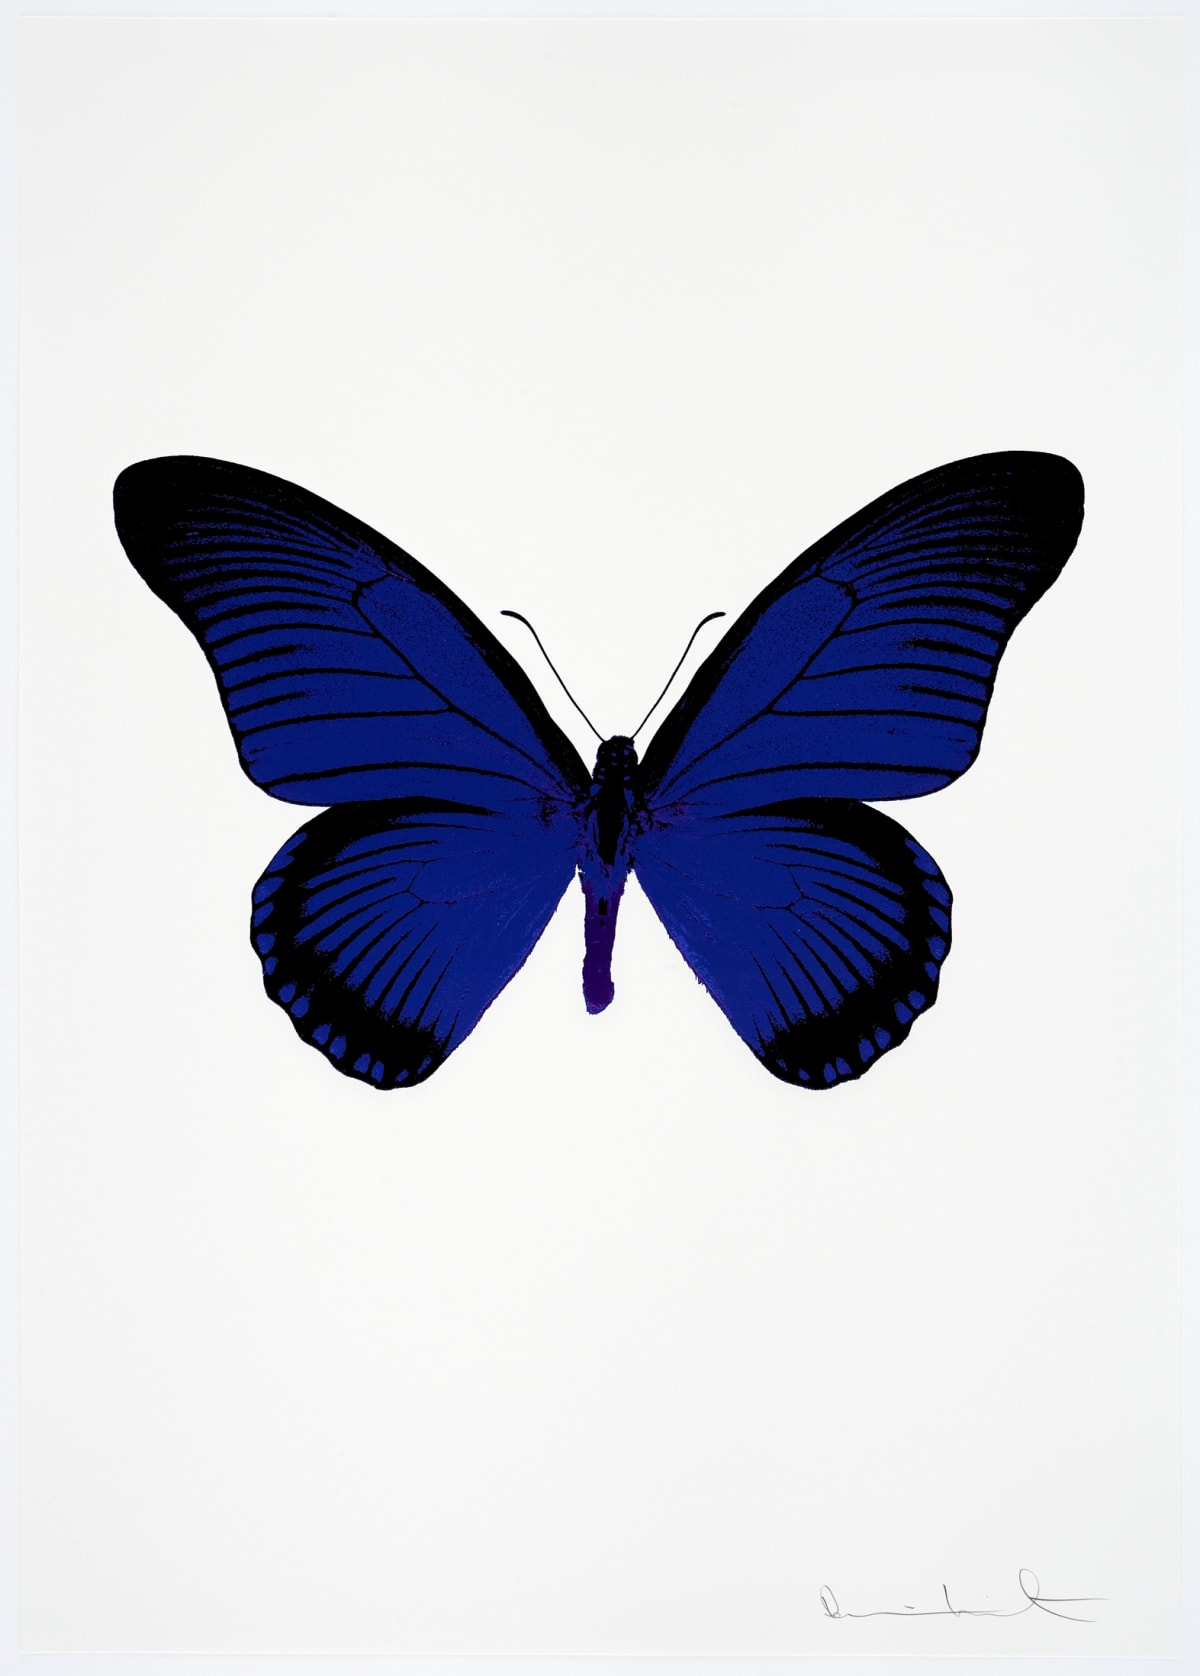 Damien Hirst The Souls IV - Westminster Blue/Raven Black/Imperial Purple, 2010 3 colour foil block on 300gsm Arches 88 archival paper. Signed and numbered. Published by Paul Stolper and Other Criteria 72 x 51cm OC8024 /1418-47 Edition of 15